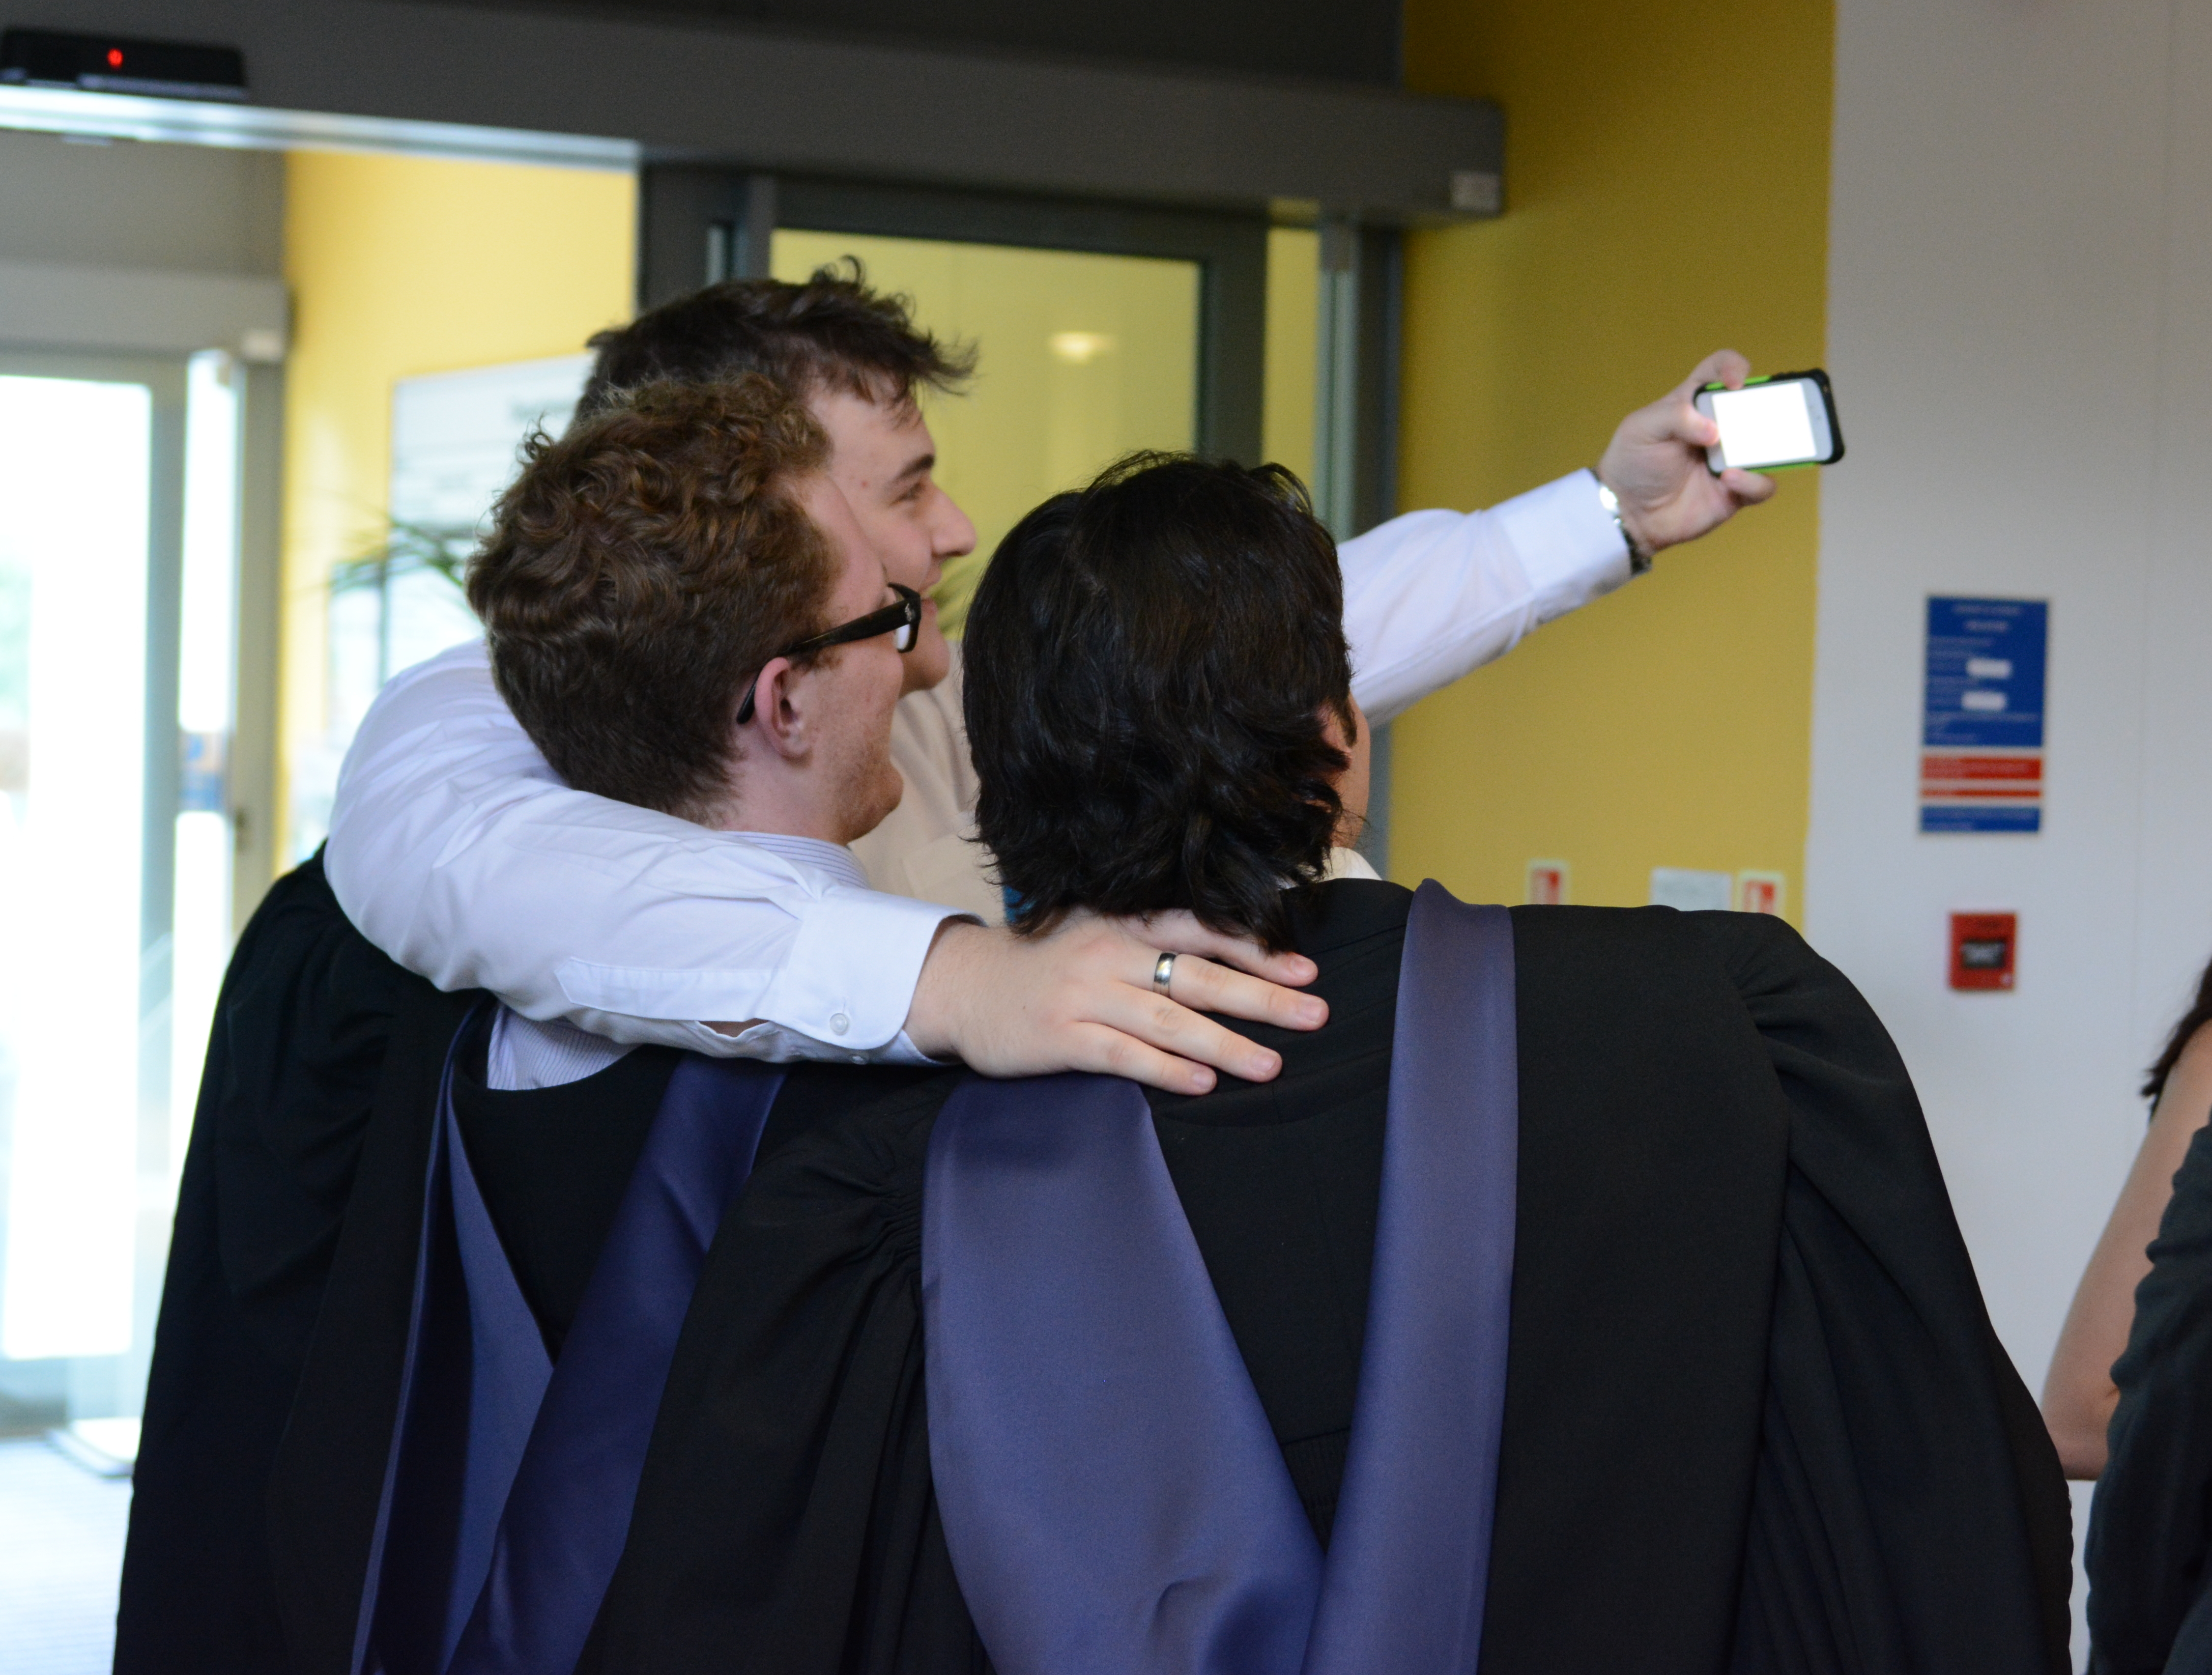 warwick graduates d most sought after by top employers news warwick graduates d most sought after by top employers graduation selfie